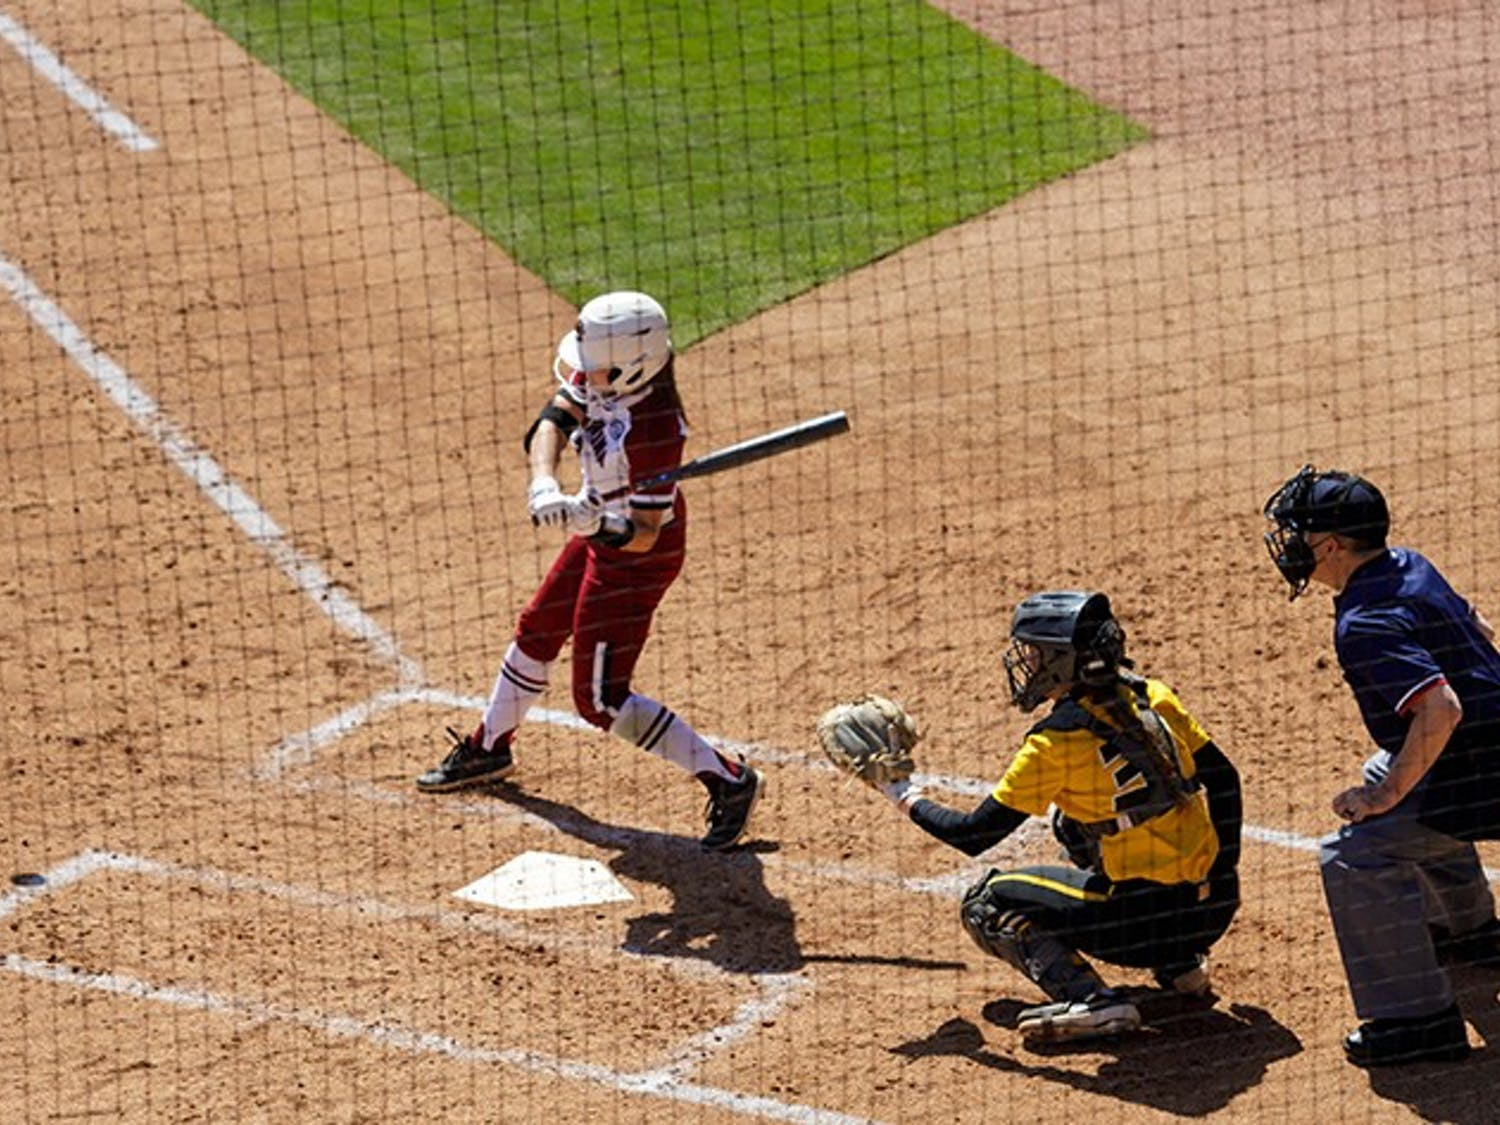 A South Carolina softball player swings the bat at a pitch thrown by the Missouri pitcher.